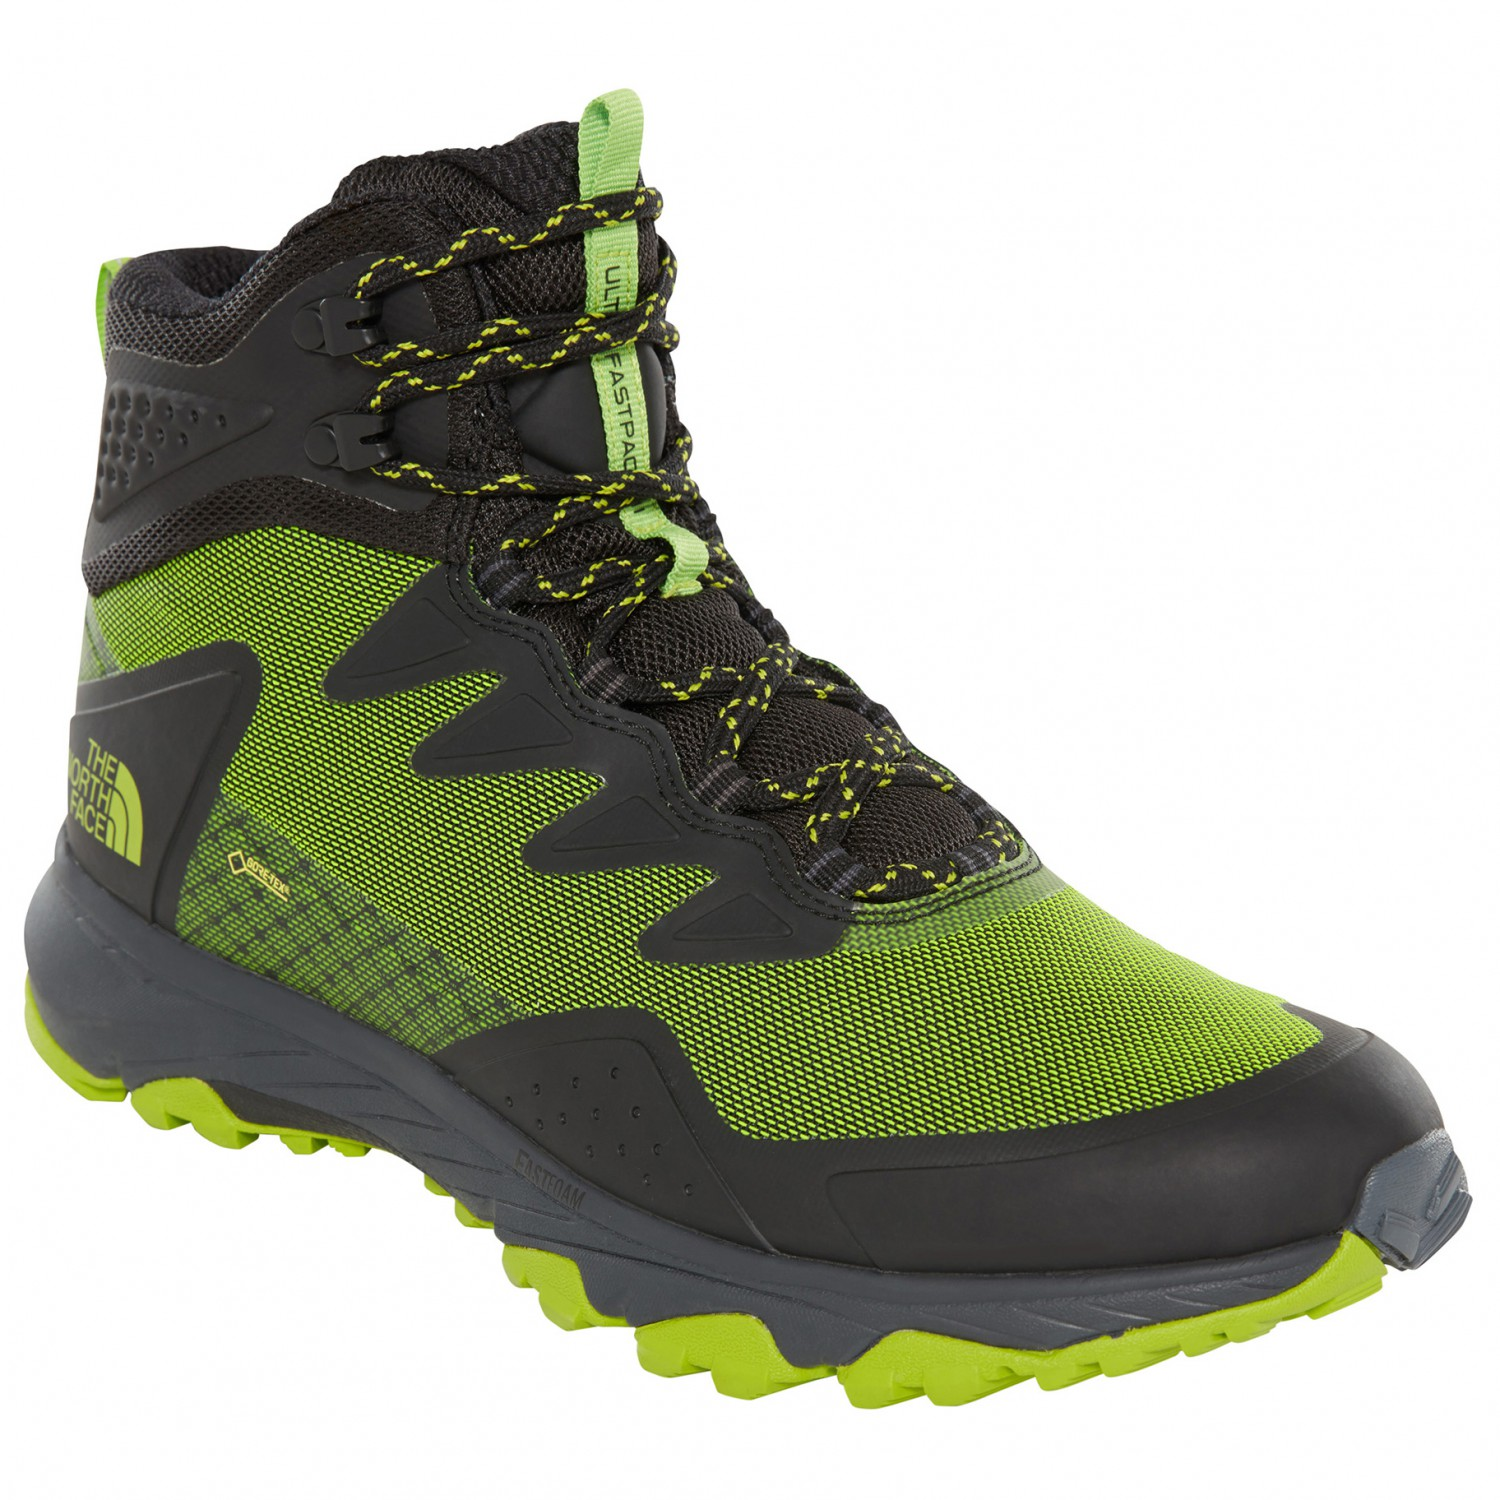 38910b4315e The North Face - Ultra Fastpack III Mid GTX - Walking boots - TNF Black /  Amber | 8,5 (US)